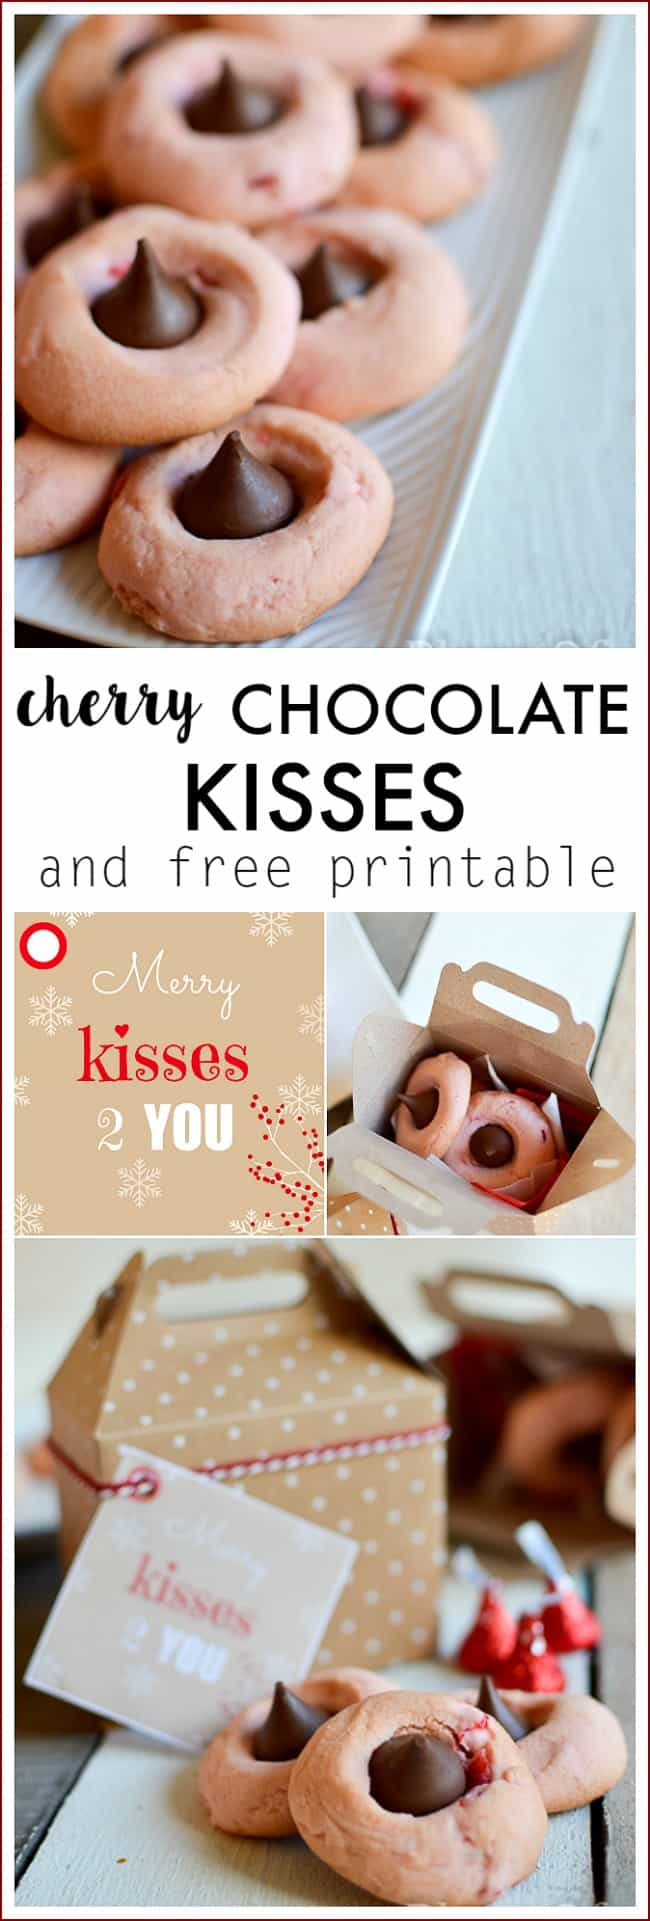 Cherry Chocolate kisses and free printable